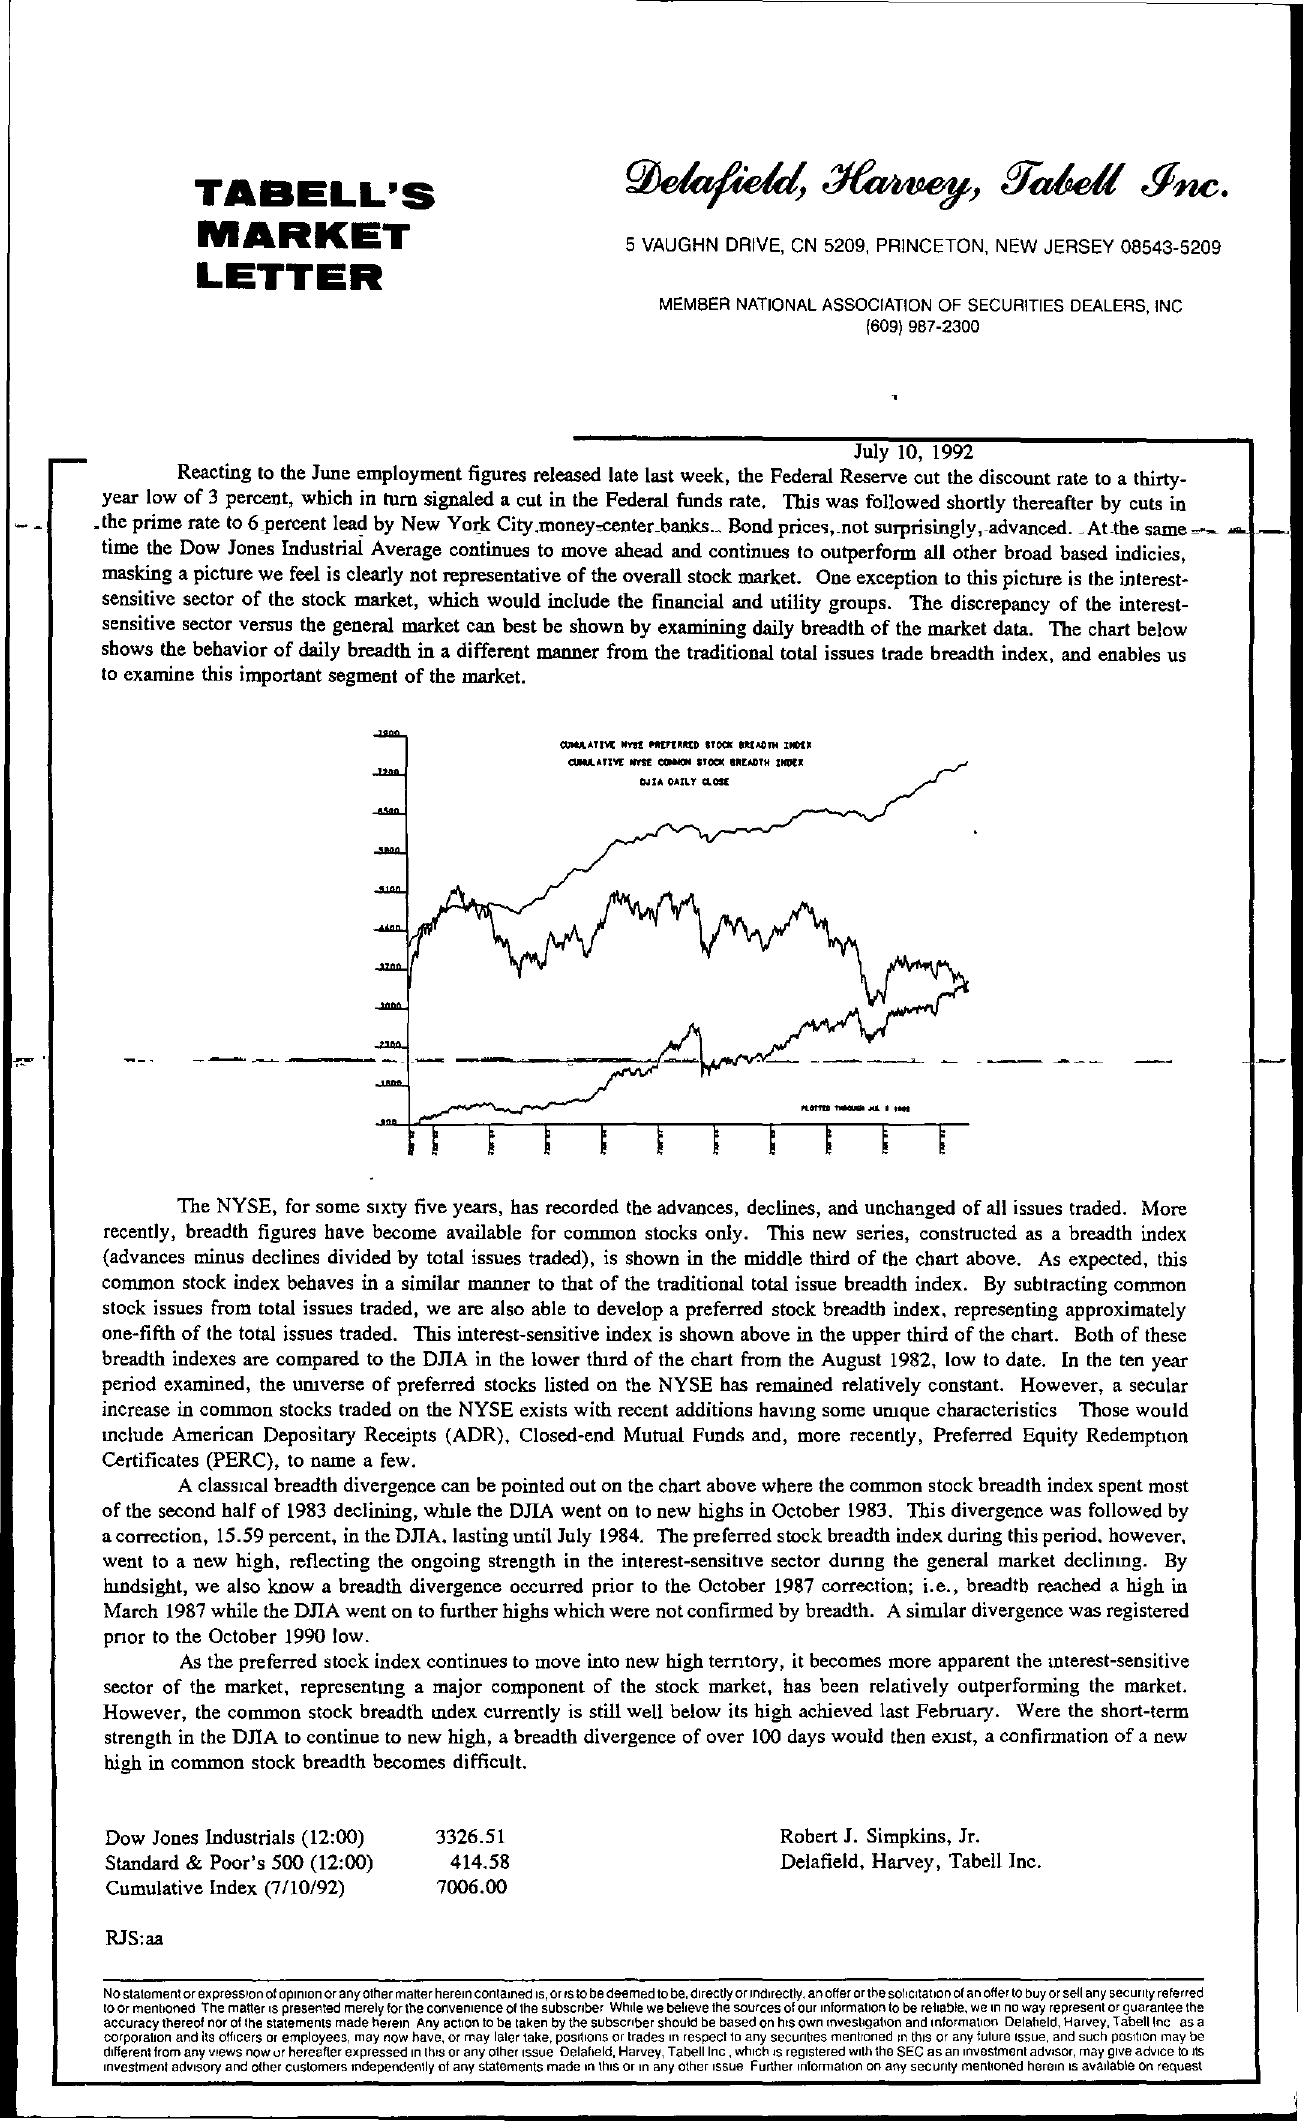 Tabell's Market Letter - July 10, 1992